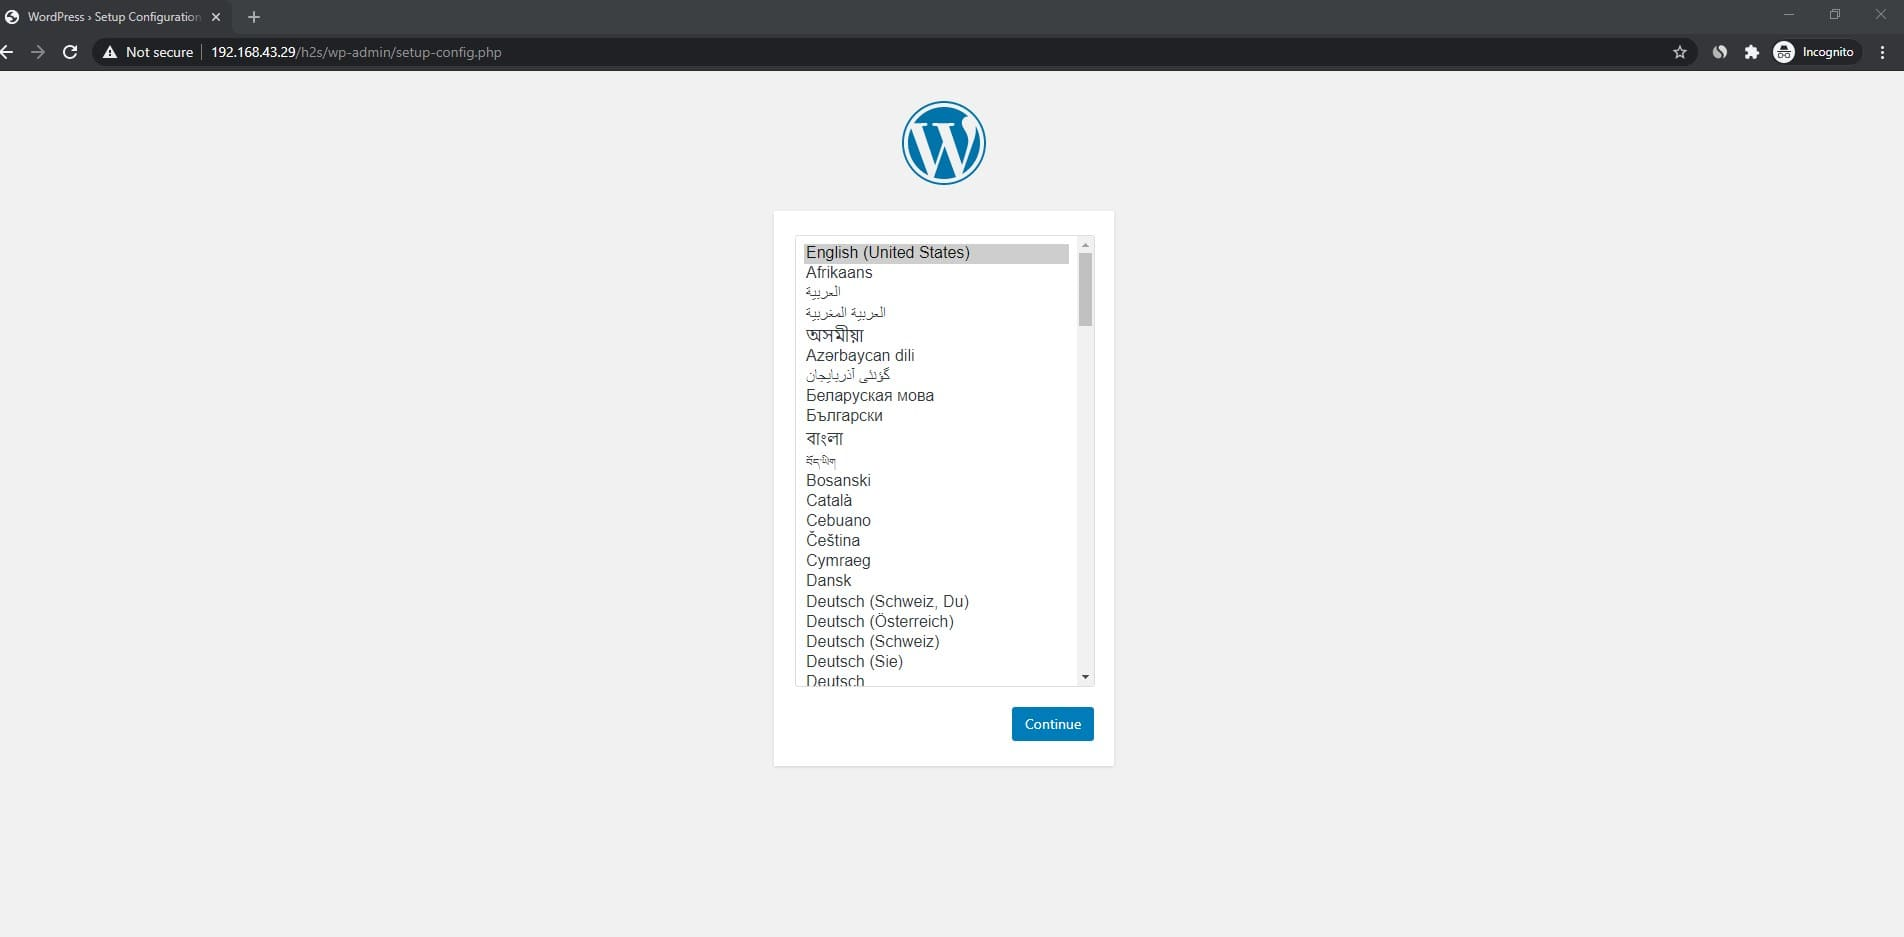 Add database details to Wordrpess